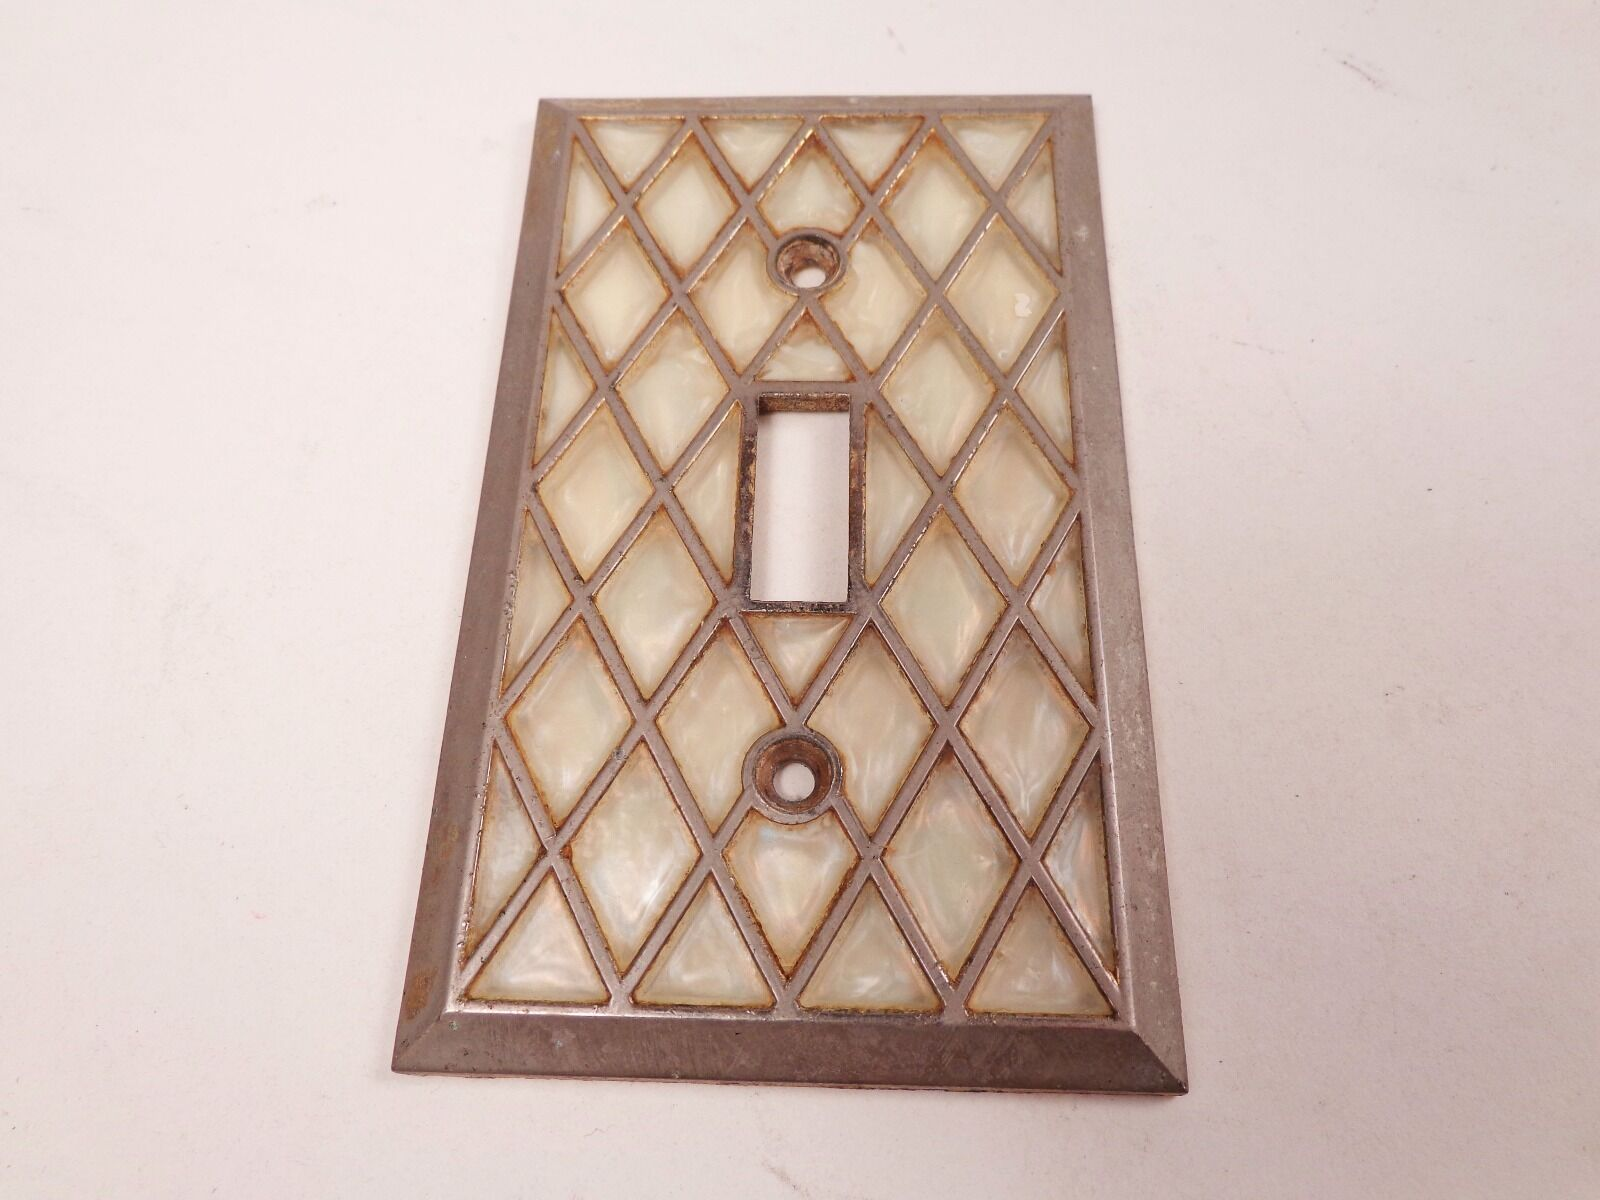 Faux Mother of Pearl Diamond Pattern Vintage Switch Plate